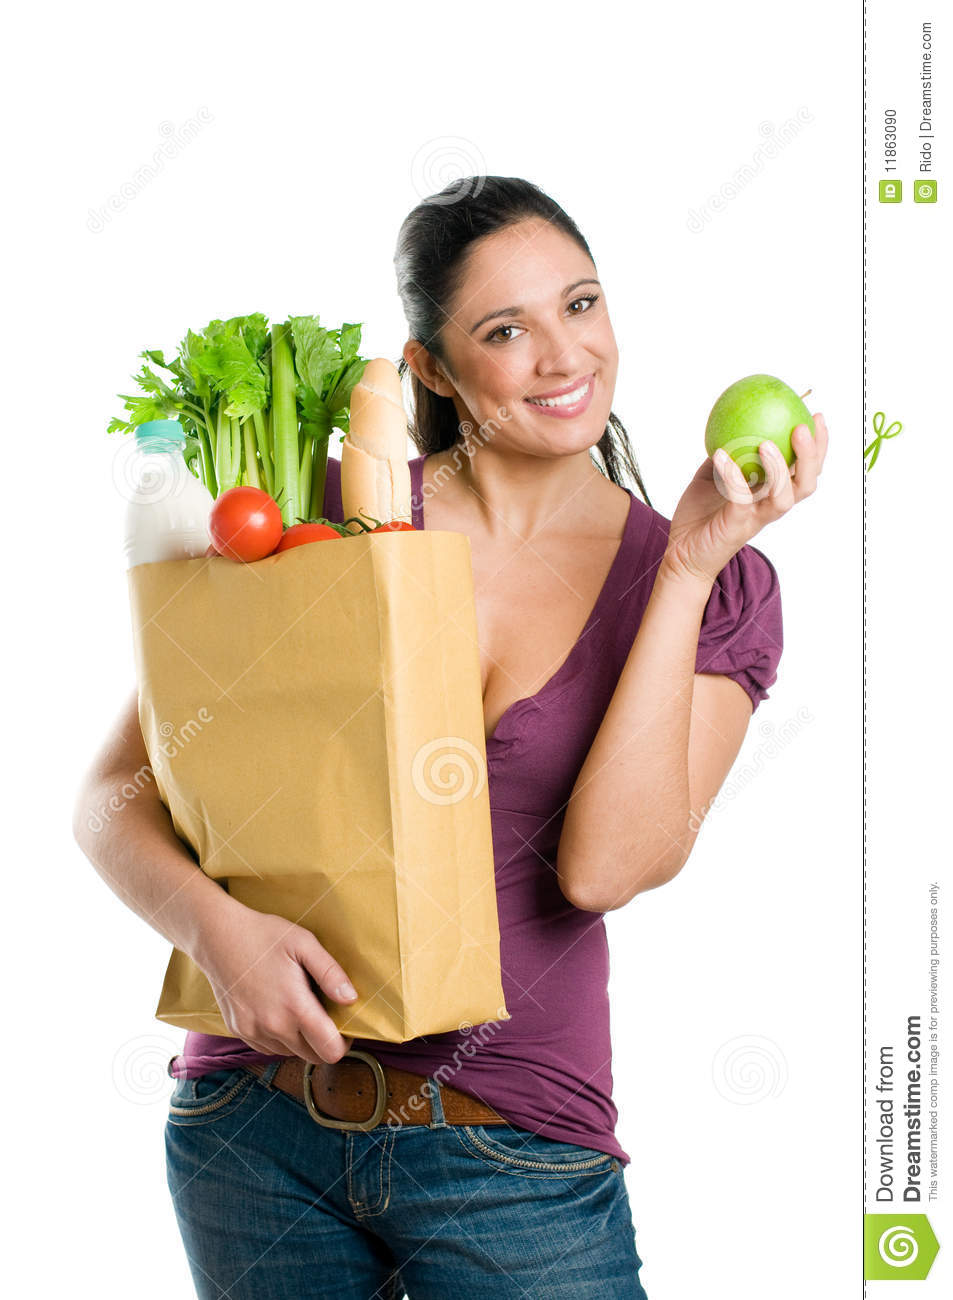 Young woman with grocery bag and green apple